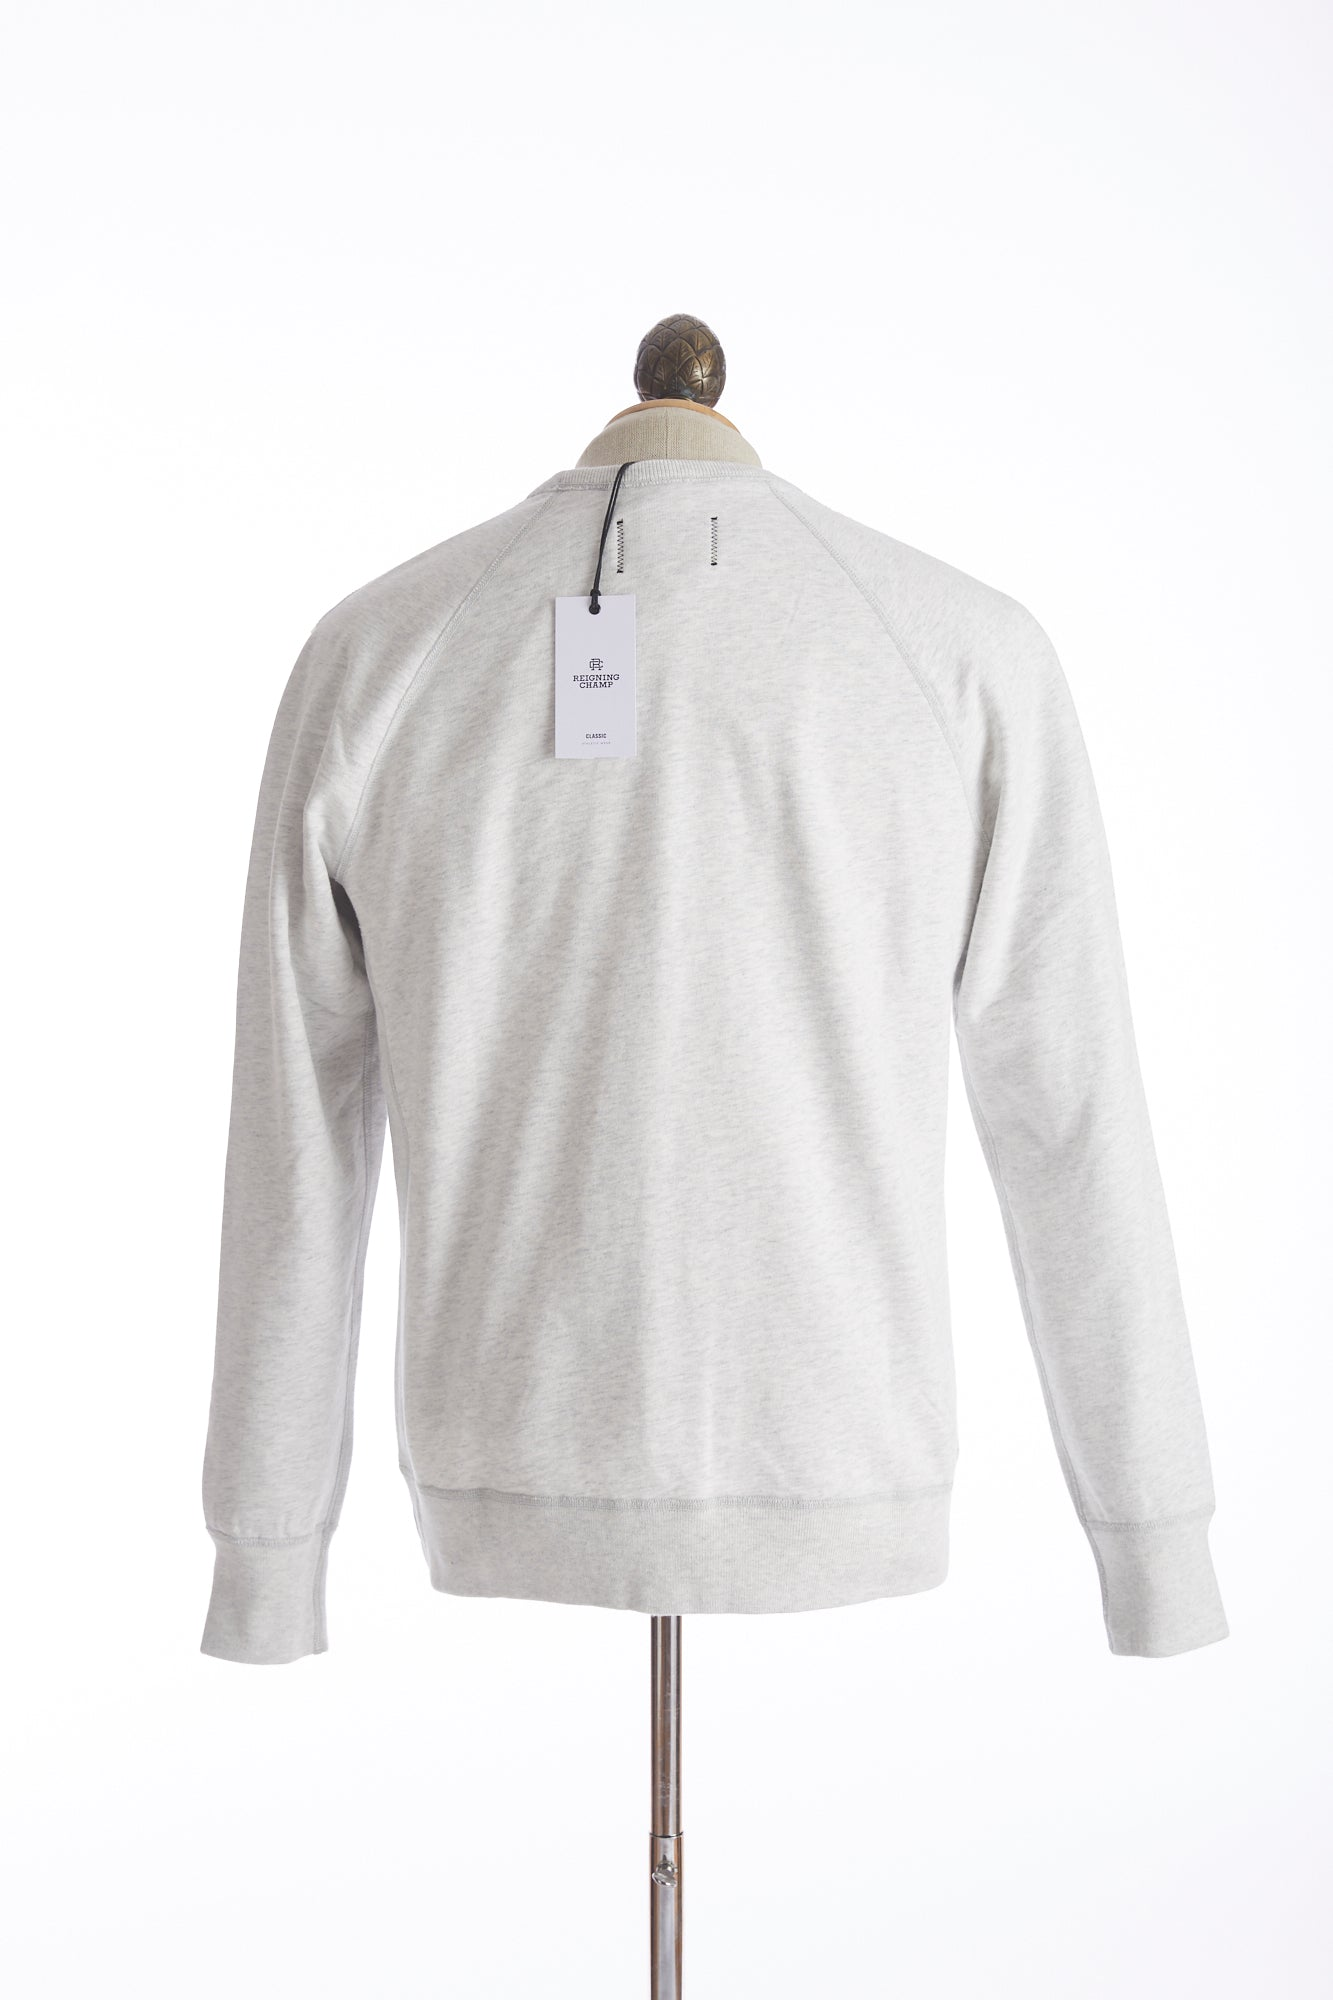 Reigning Champ Heather Ash Crewneck Sweater Back